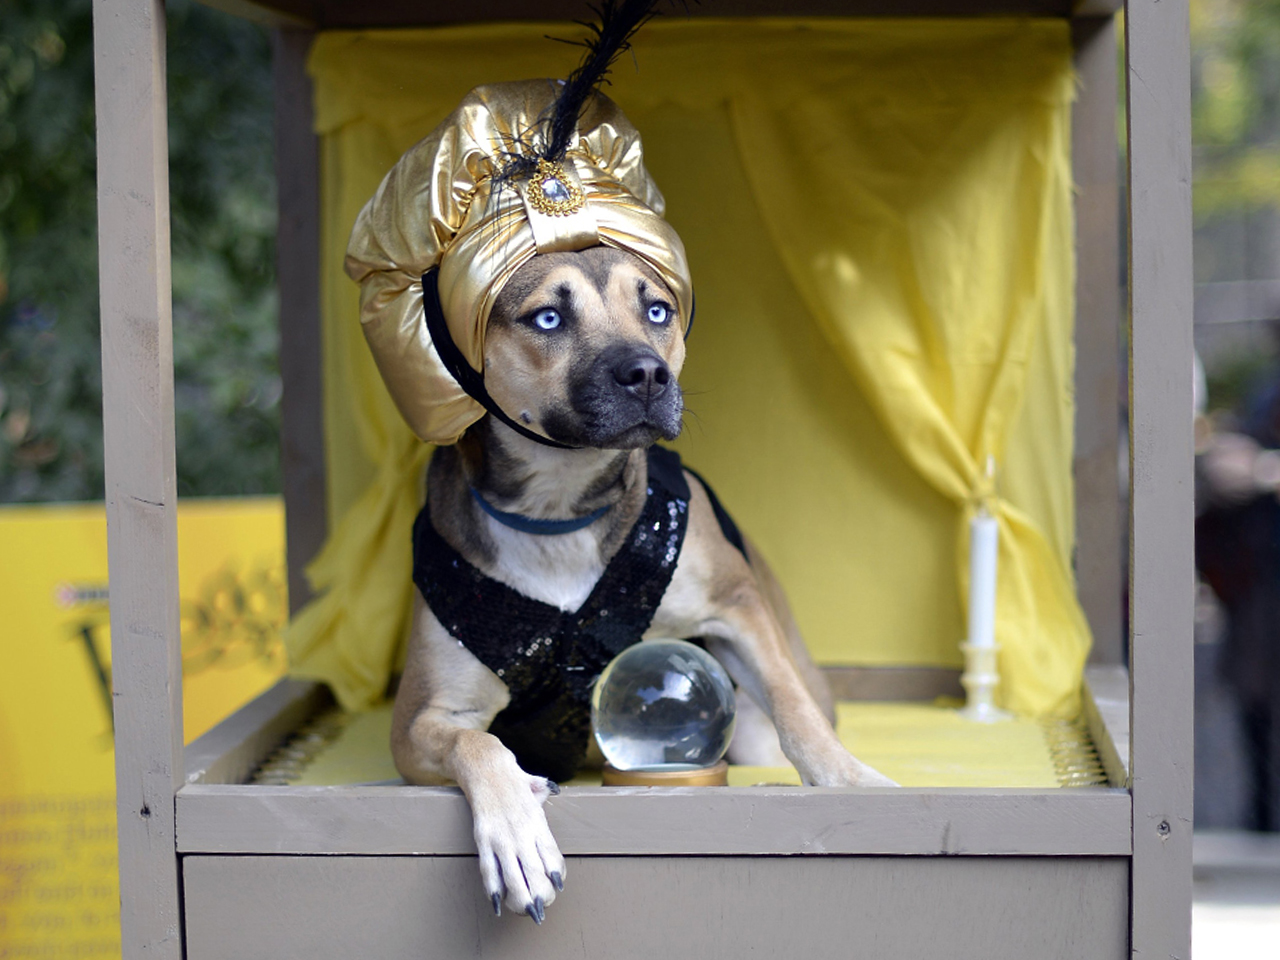 star wars to starbucks dogs flaunt creative costumes at halloween parade